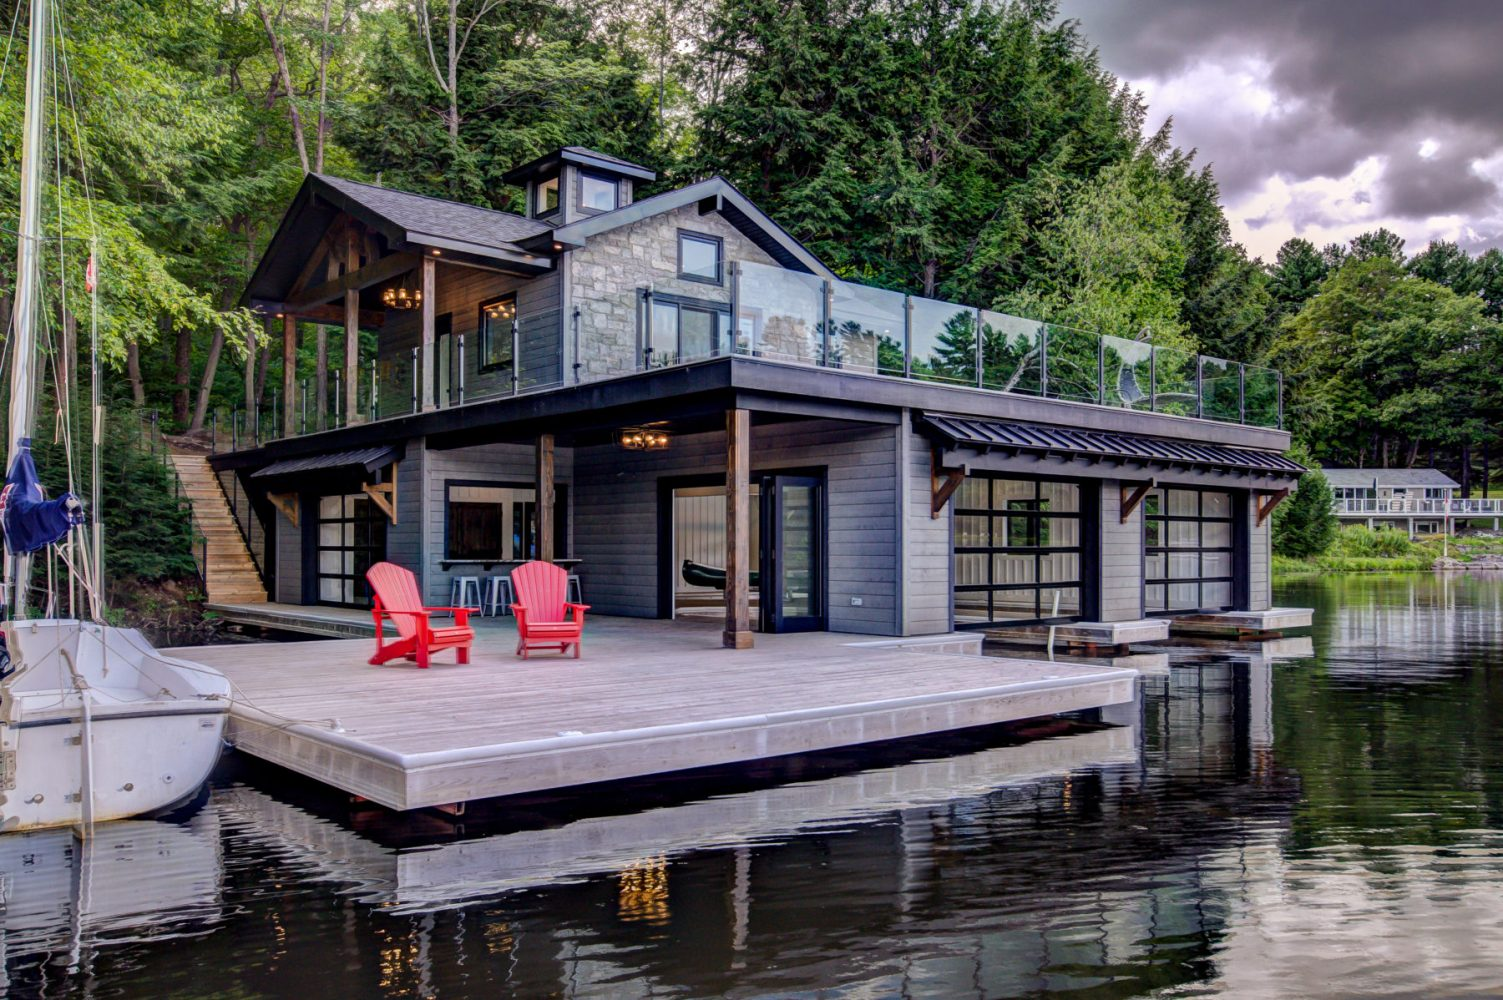 3 slip boathouse with living quarters above and glass railings built by PattyMac